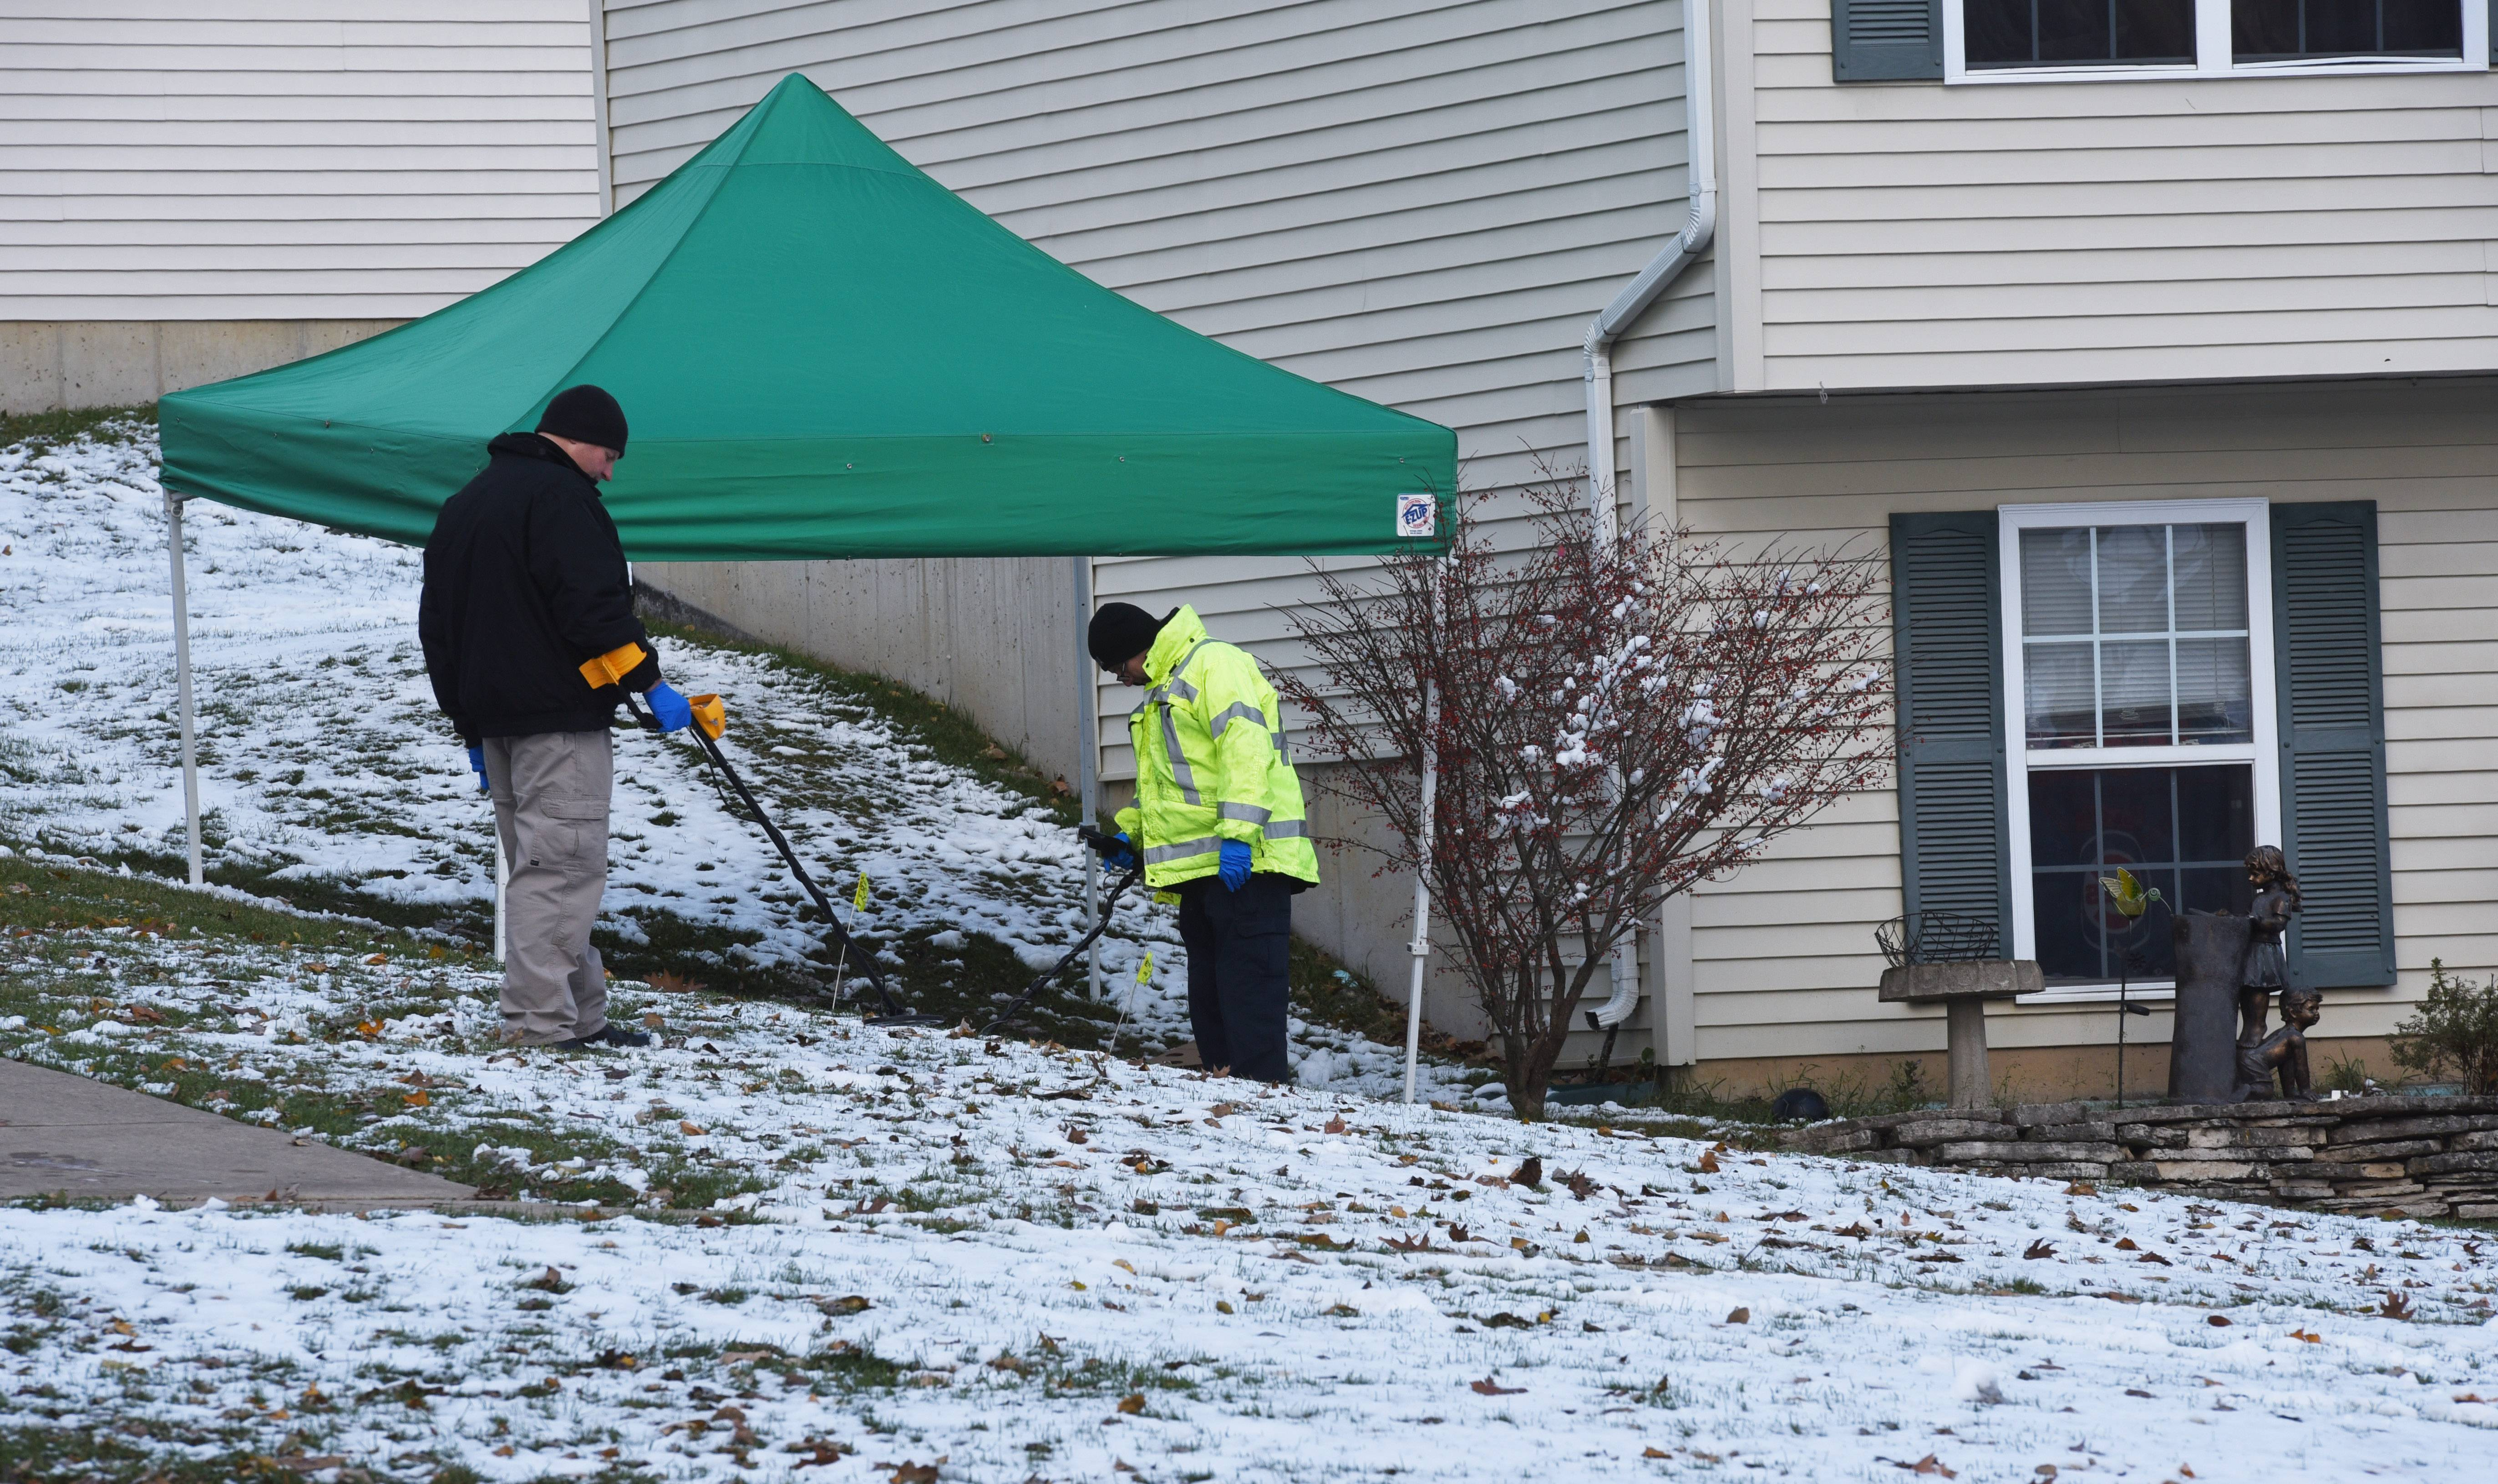 Police conduct an investigation at a home Friday on the 600 block of East Forest Avenue in West Chicago.